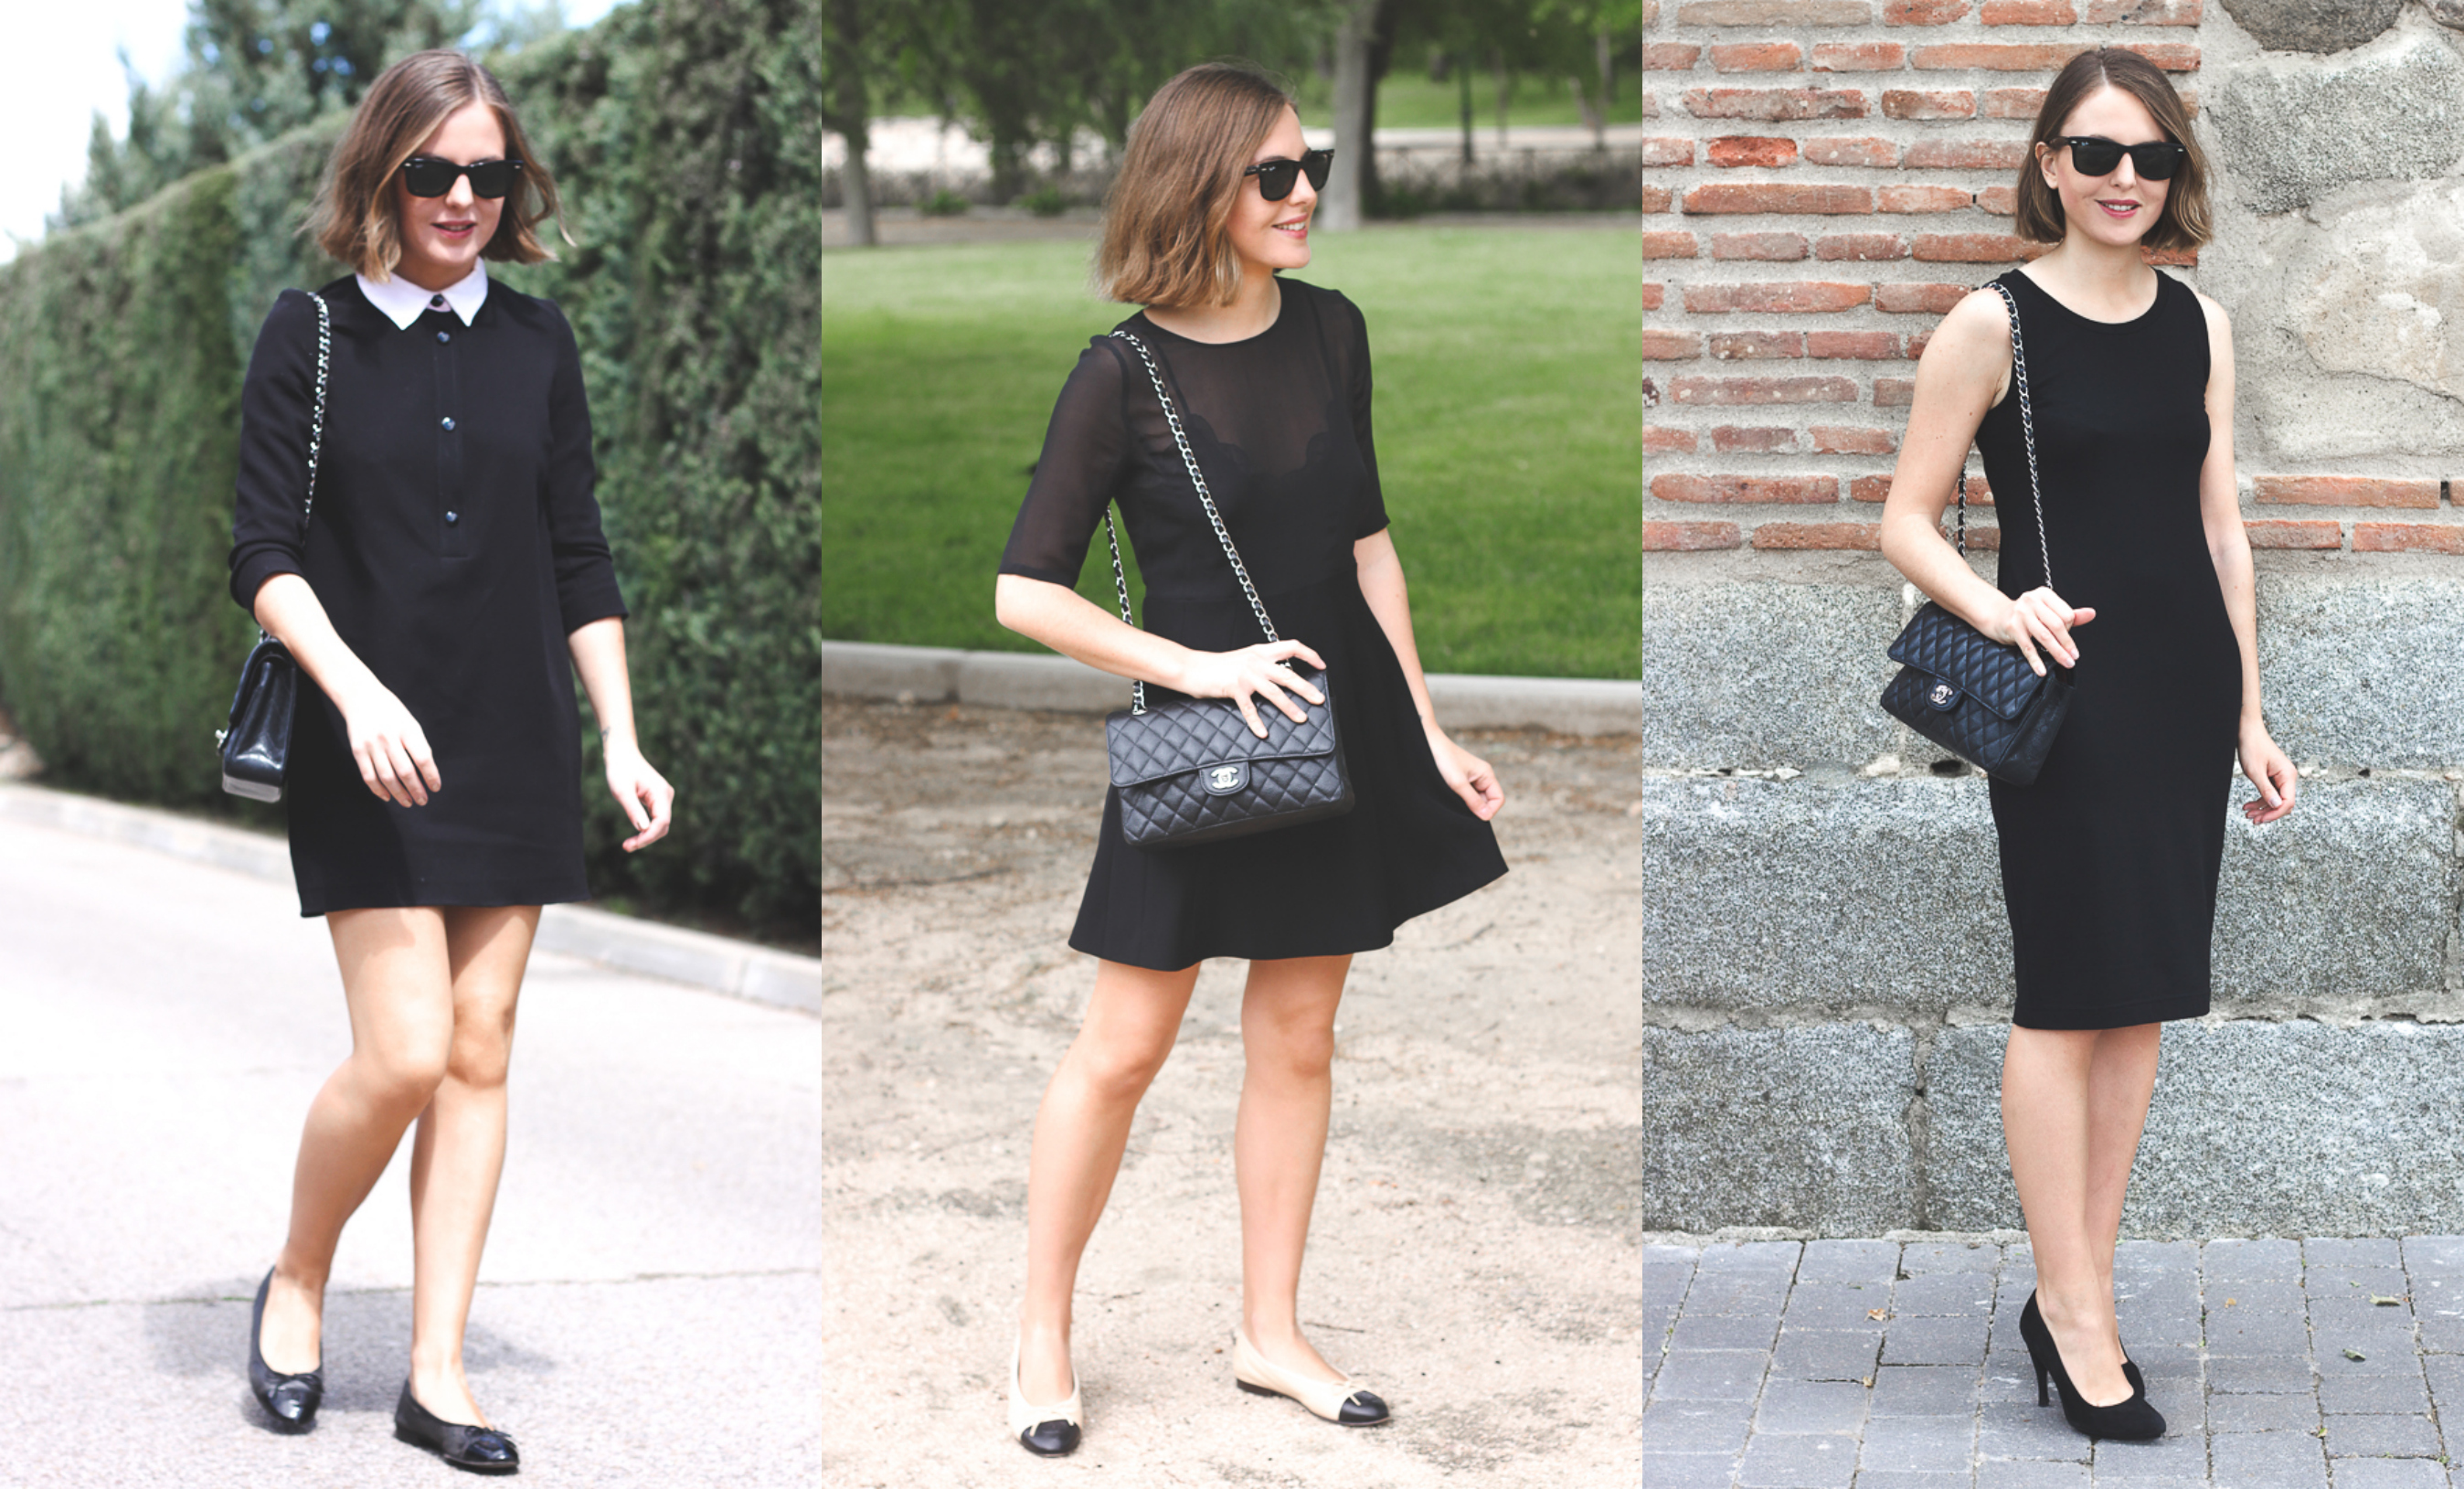 Trini blog |Little black dress